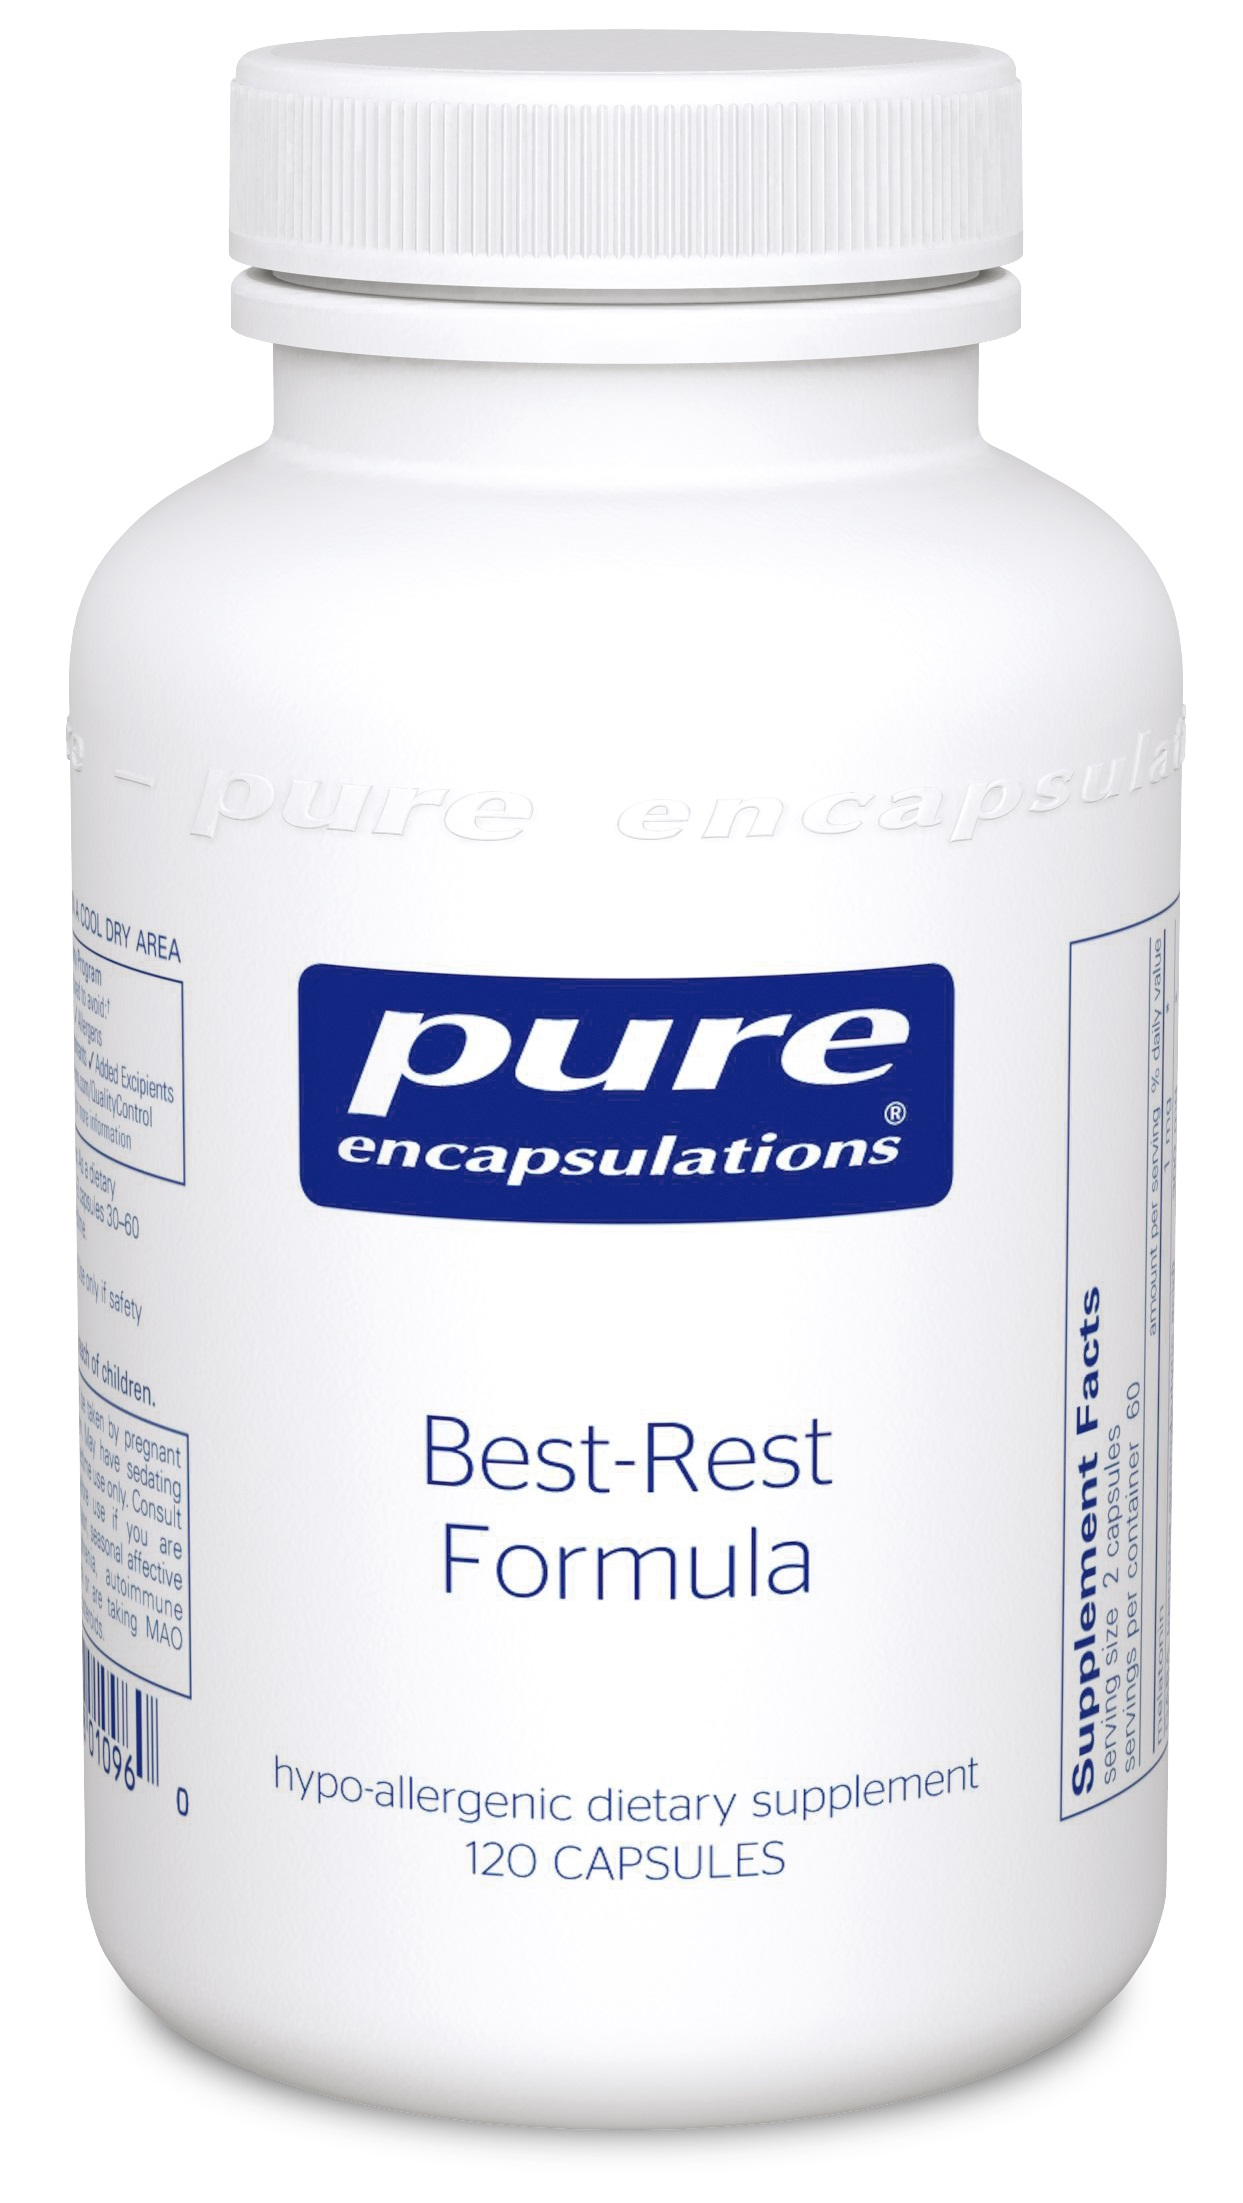 Pure Encapsulations Best-Rest Formula